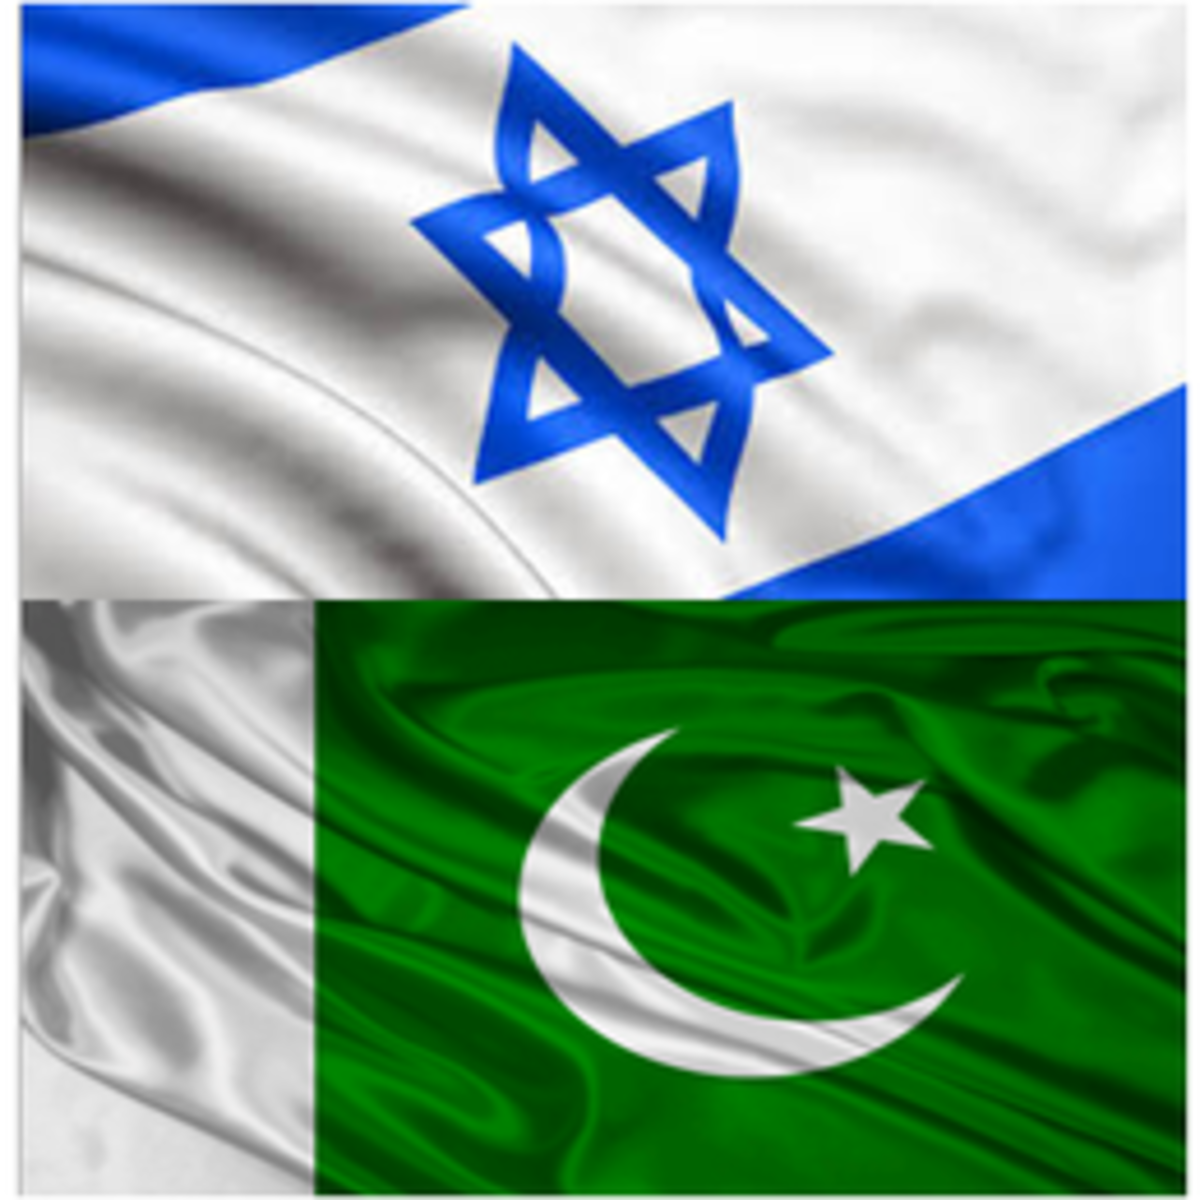 Israel/Palestine Conflict Questions from Pakistan